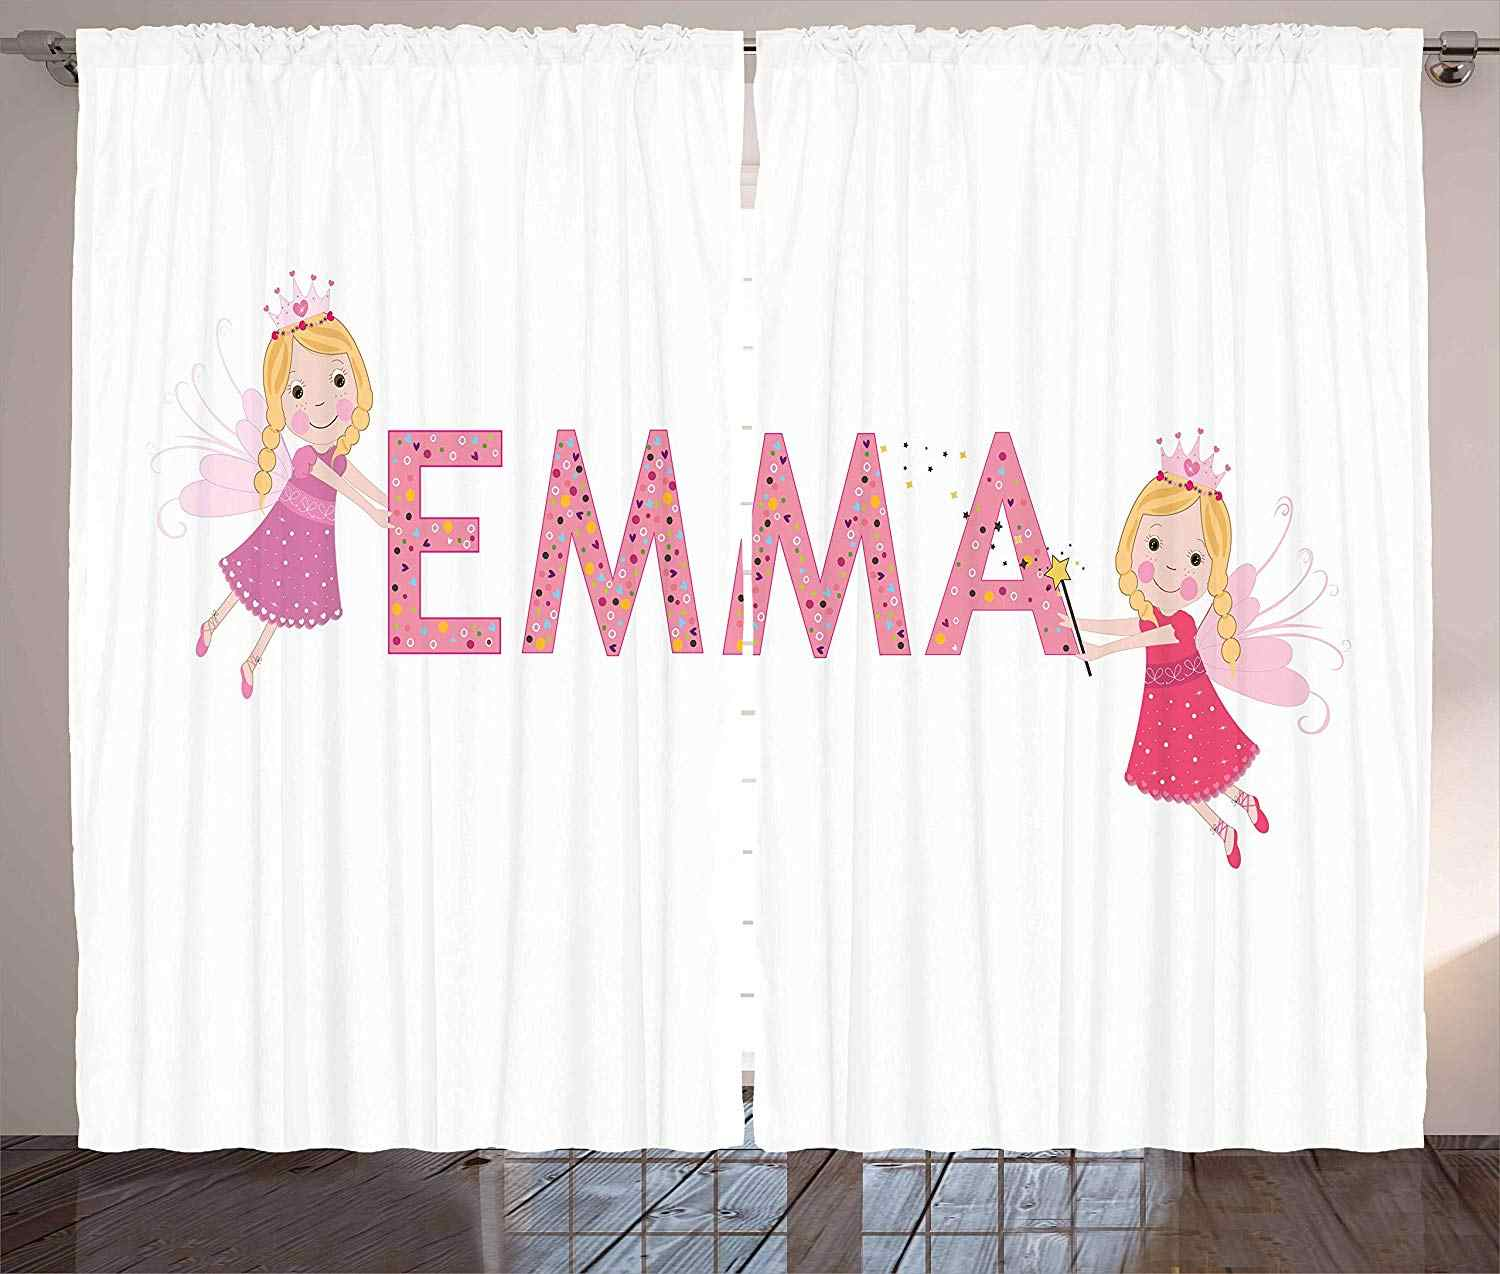 Emma Curtains Cute Fairy Princesses Holding a Popular Widespread Girl Name with Polka Dots Pattern Living Room Bedroom Window